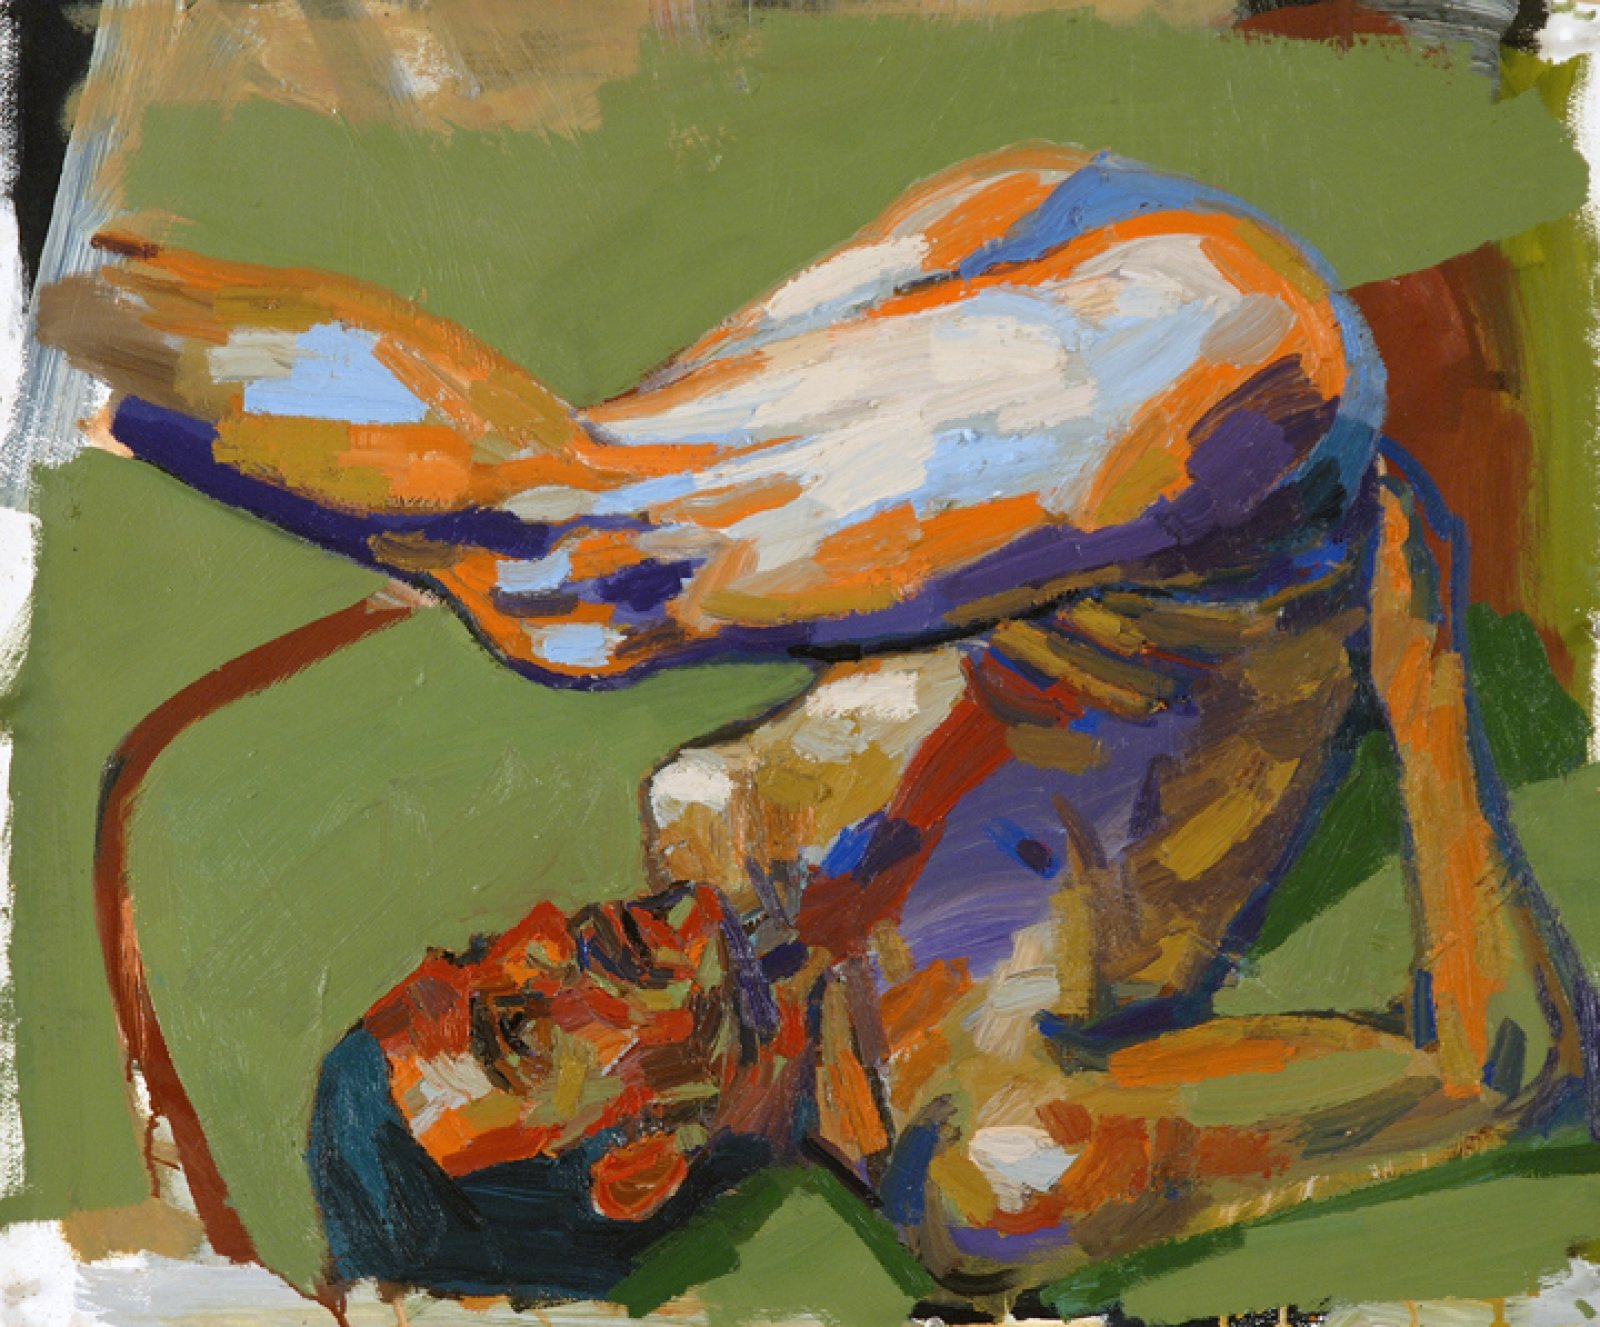 Damian Moppett, Figure Study for Acrobat, 2006, oil on paper, 28 x 33 in. (70 x 84 cm) by Damian Moppett